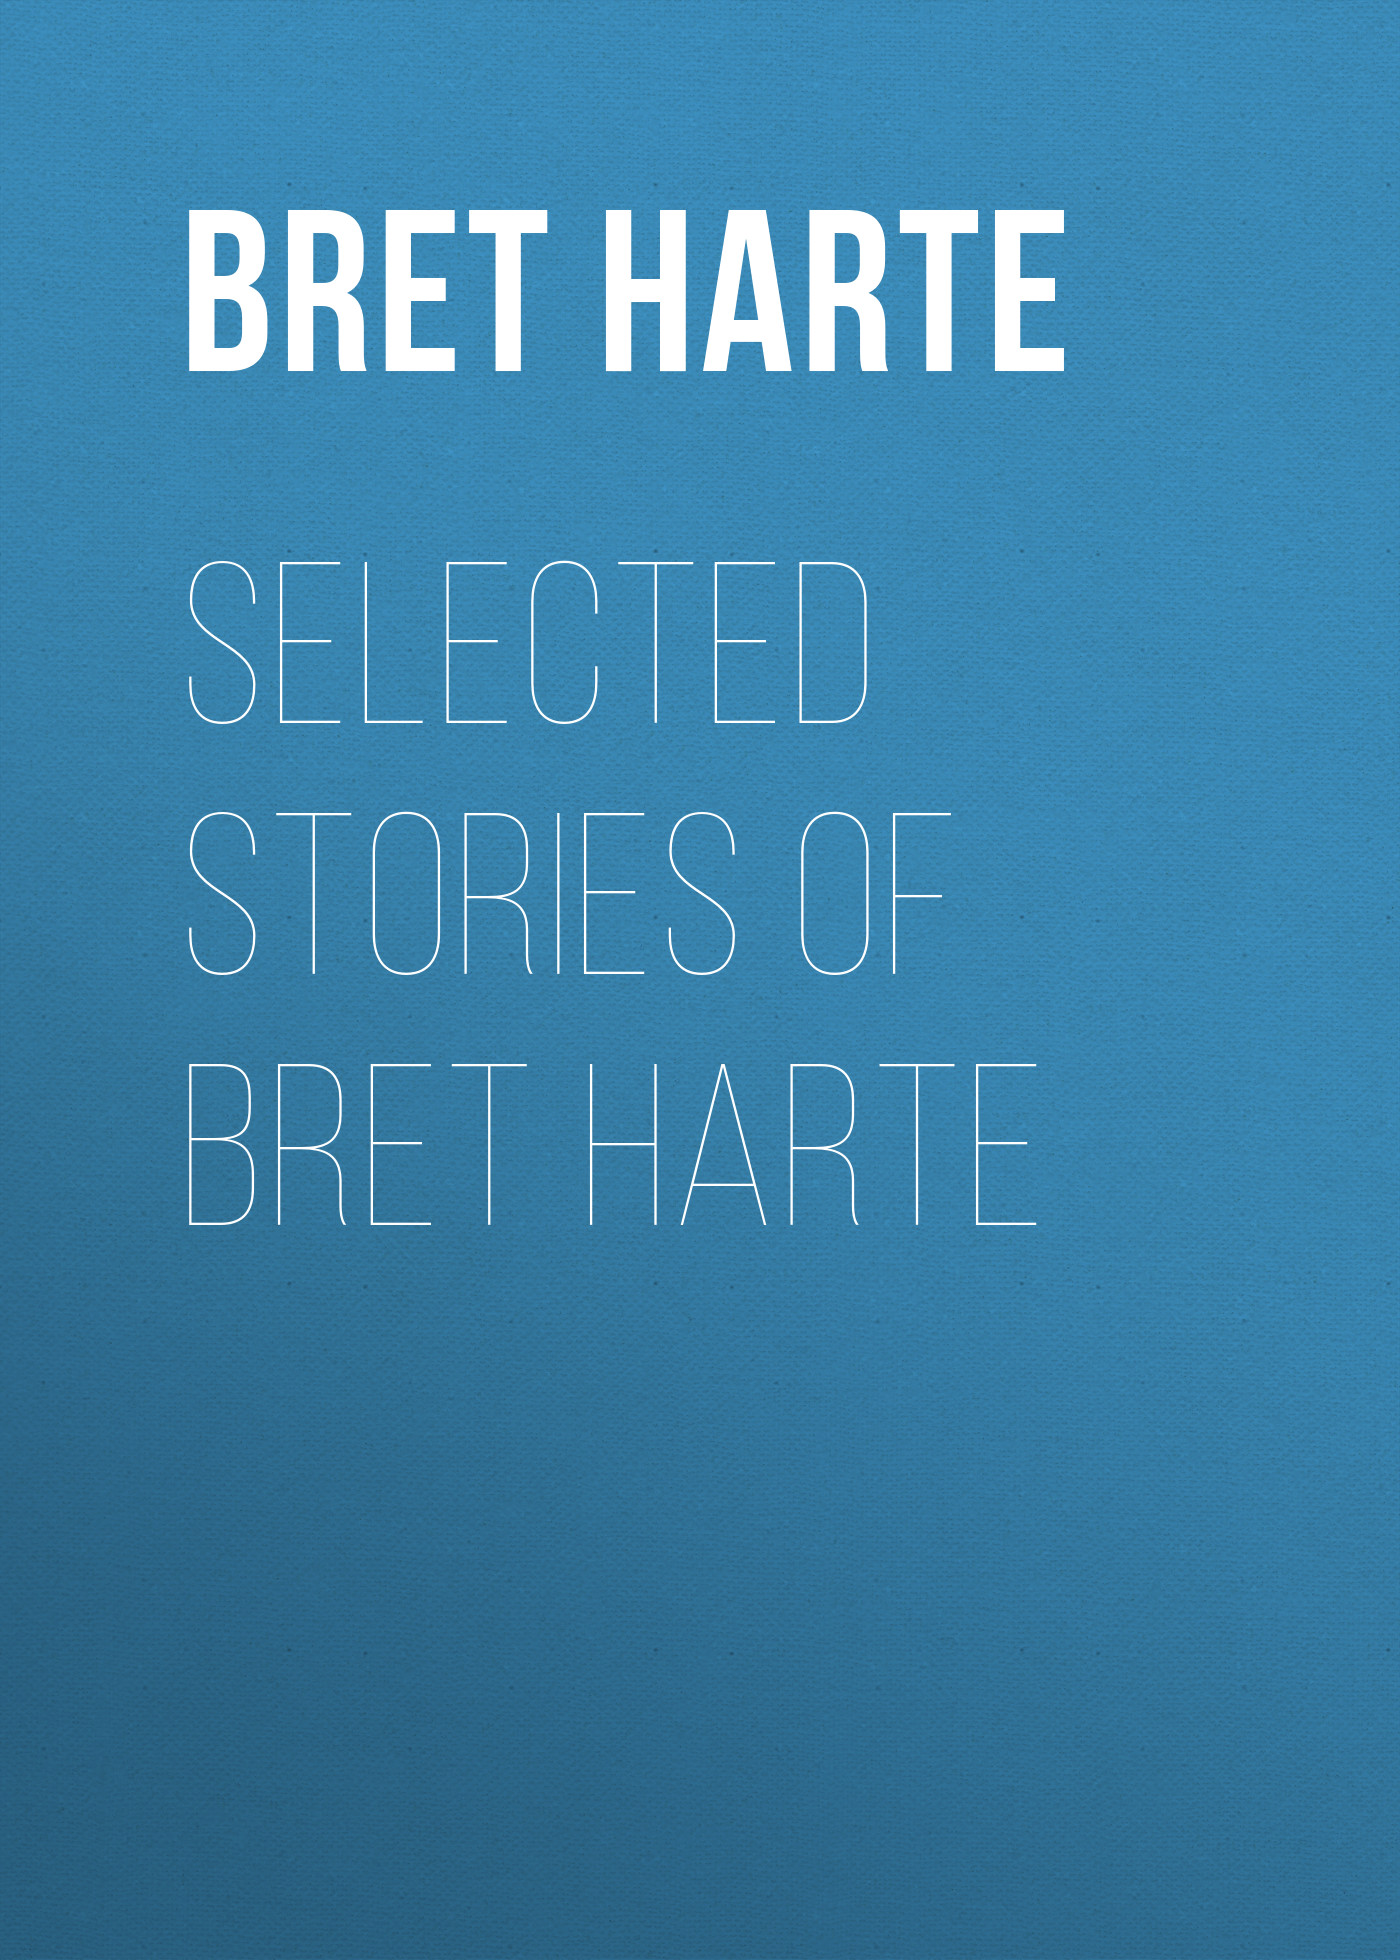 Bret Harte Selected Stories of Bret Harte